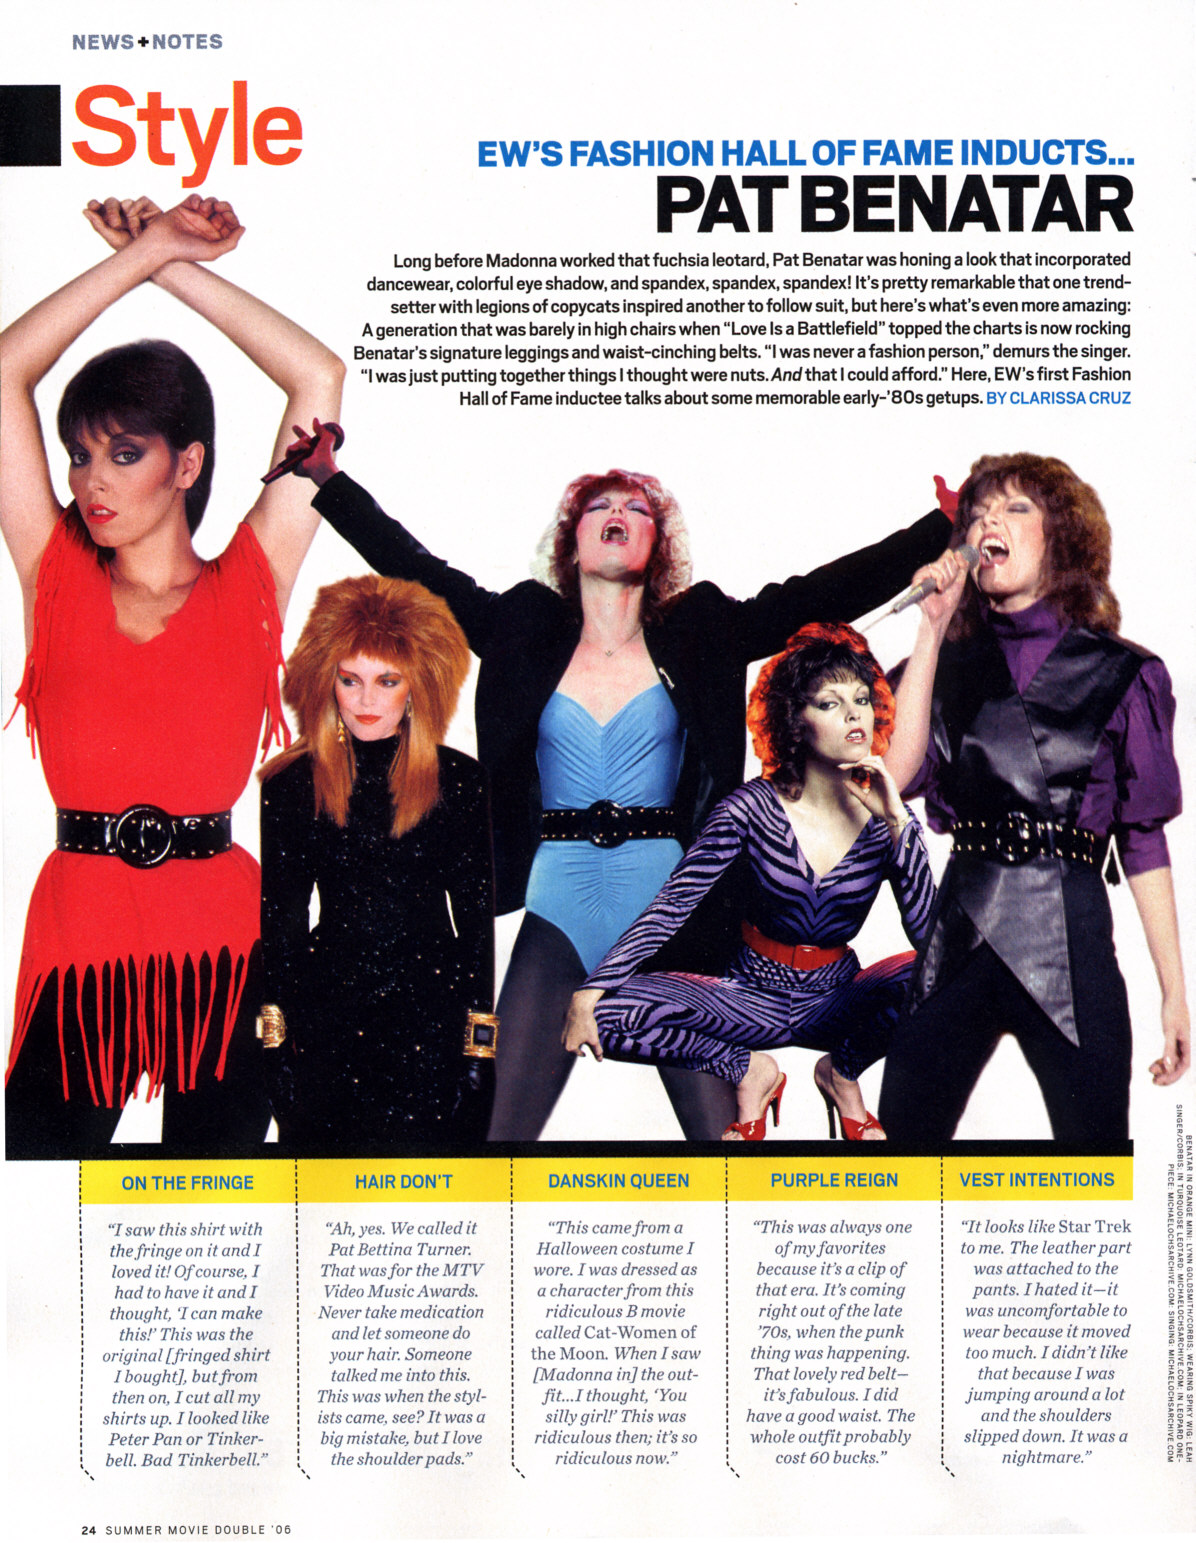 Tvd ticket giveaway pat benatar 719 at the 930 club the vinyl and yes theres pat benatars signature pixie punk style m4hsunfo